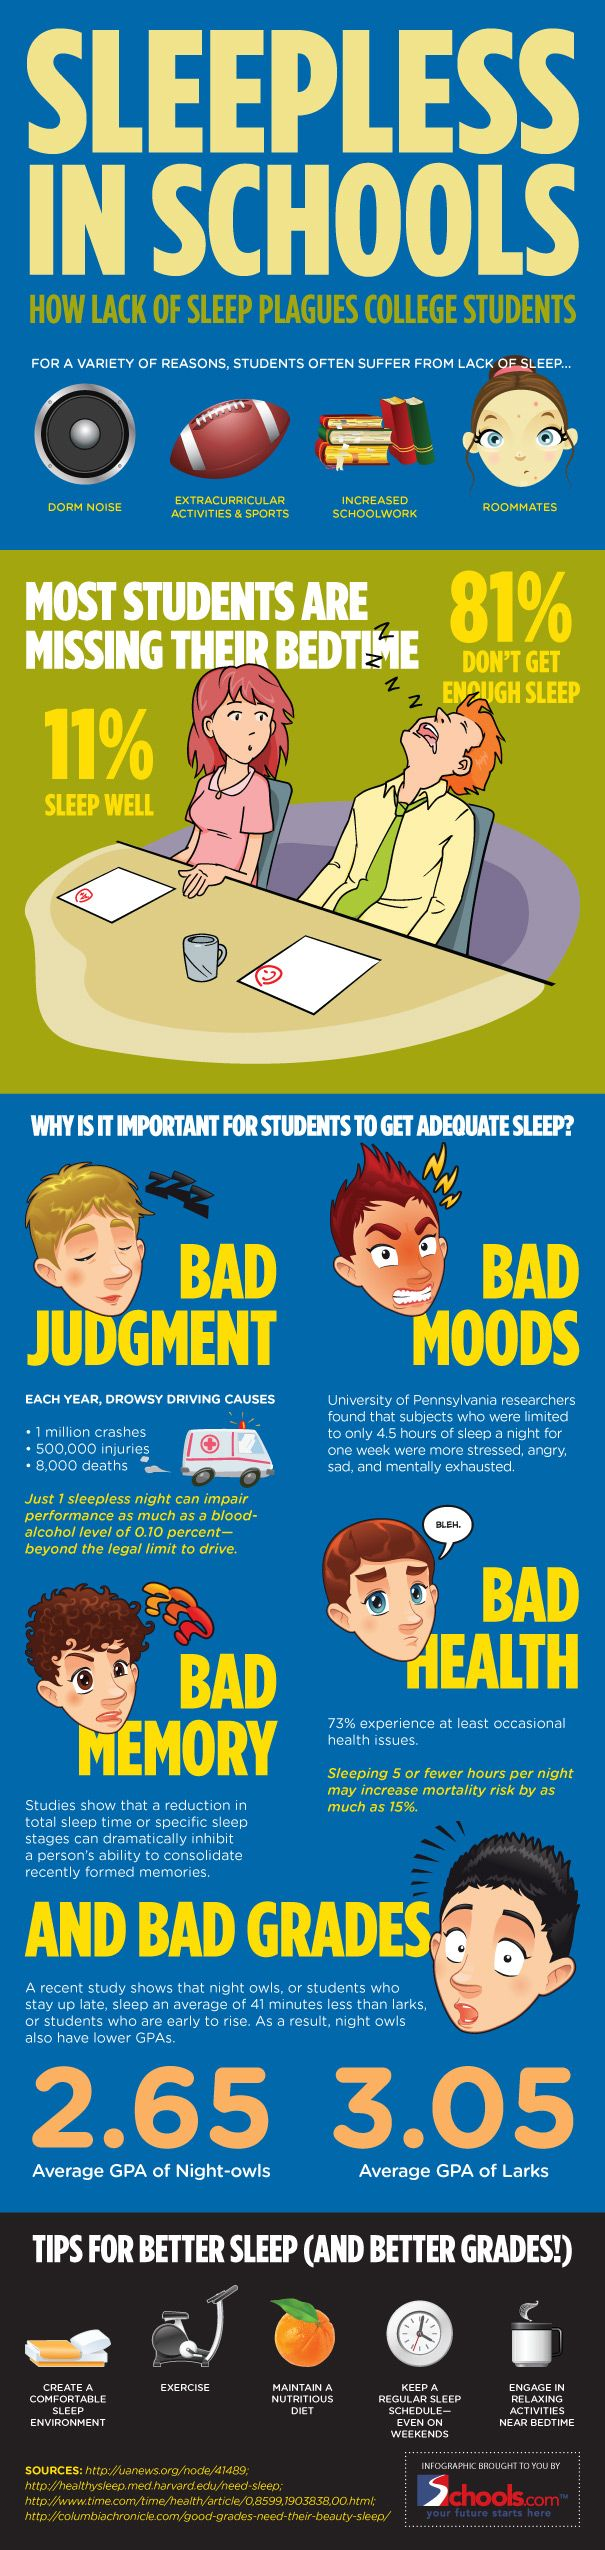 an analysis of sleep deprivation issue among teenagers School start times for middle school and high school sufficient sleep among the impact of sleep deprivation on adolescent.